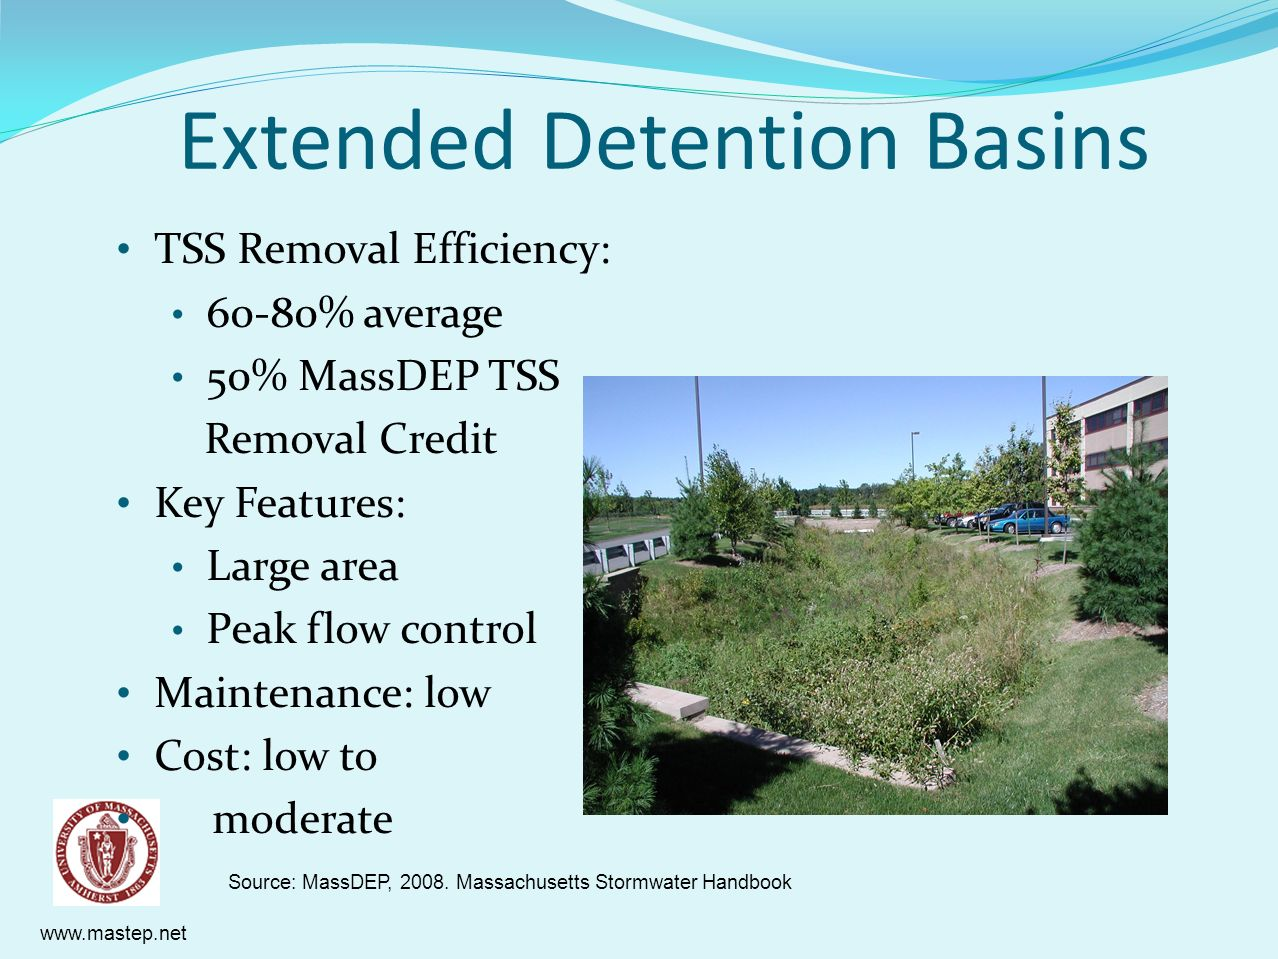 Extended Detention Basins